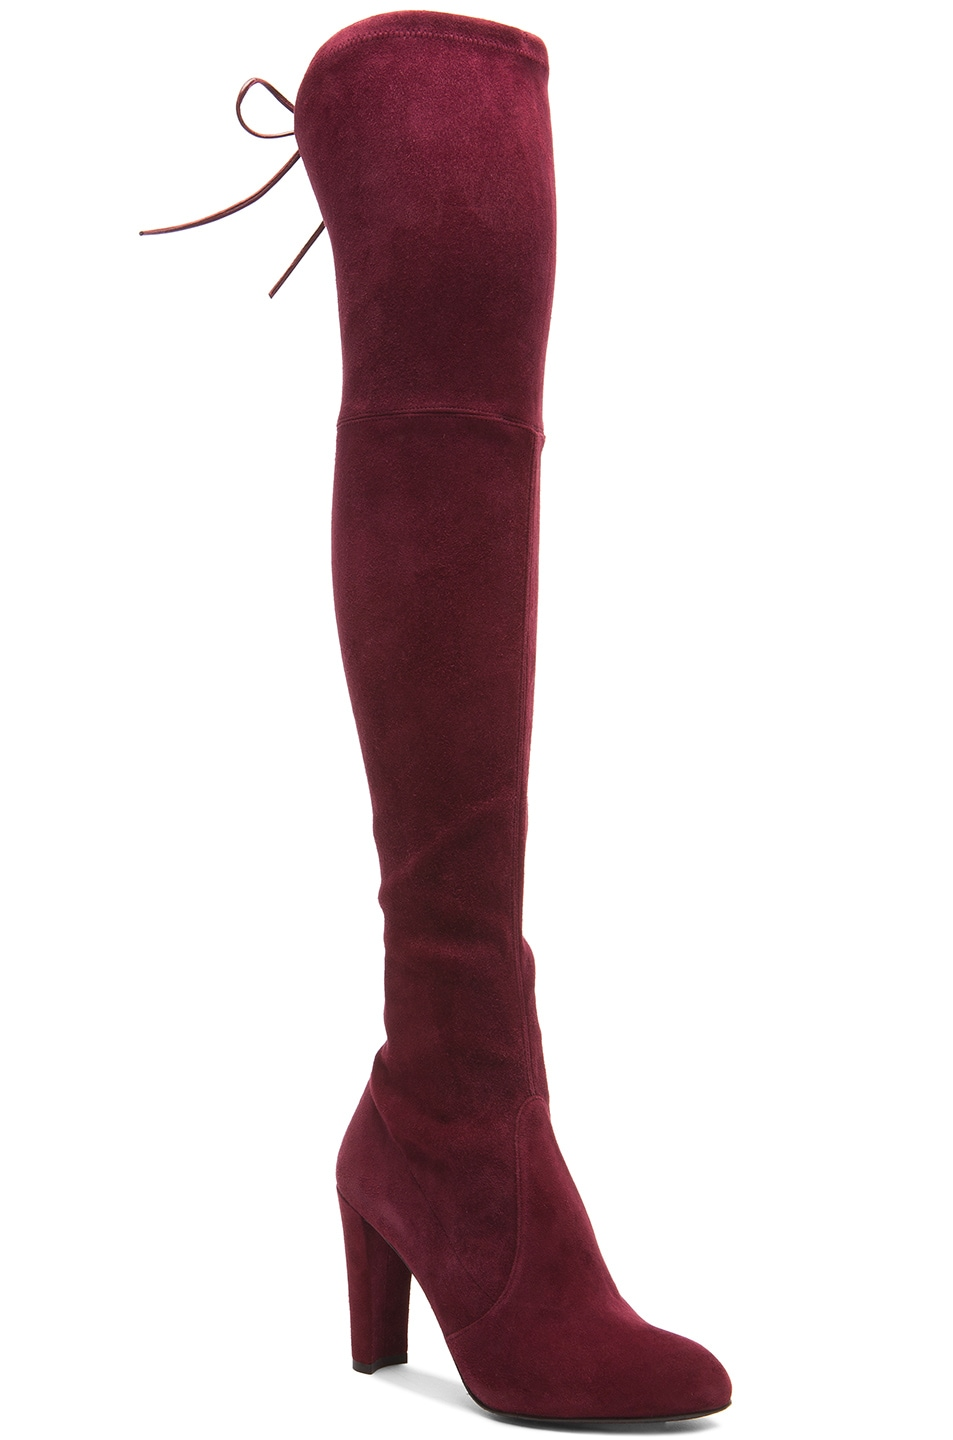 Image 2 of Stuart Weitzman Highland Suede Boots in Bordeaux Suede